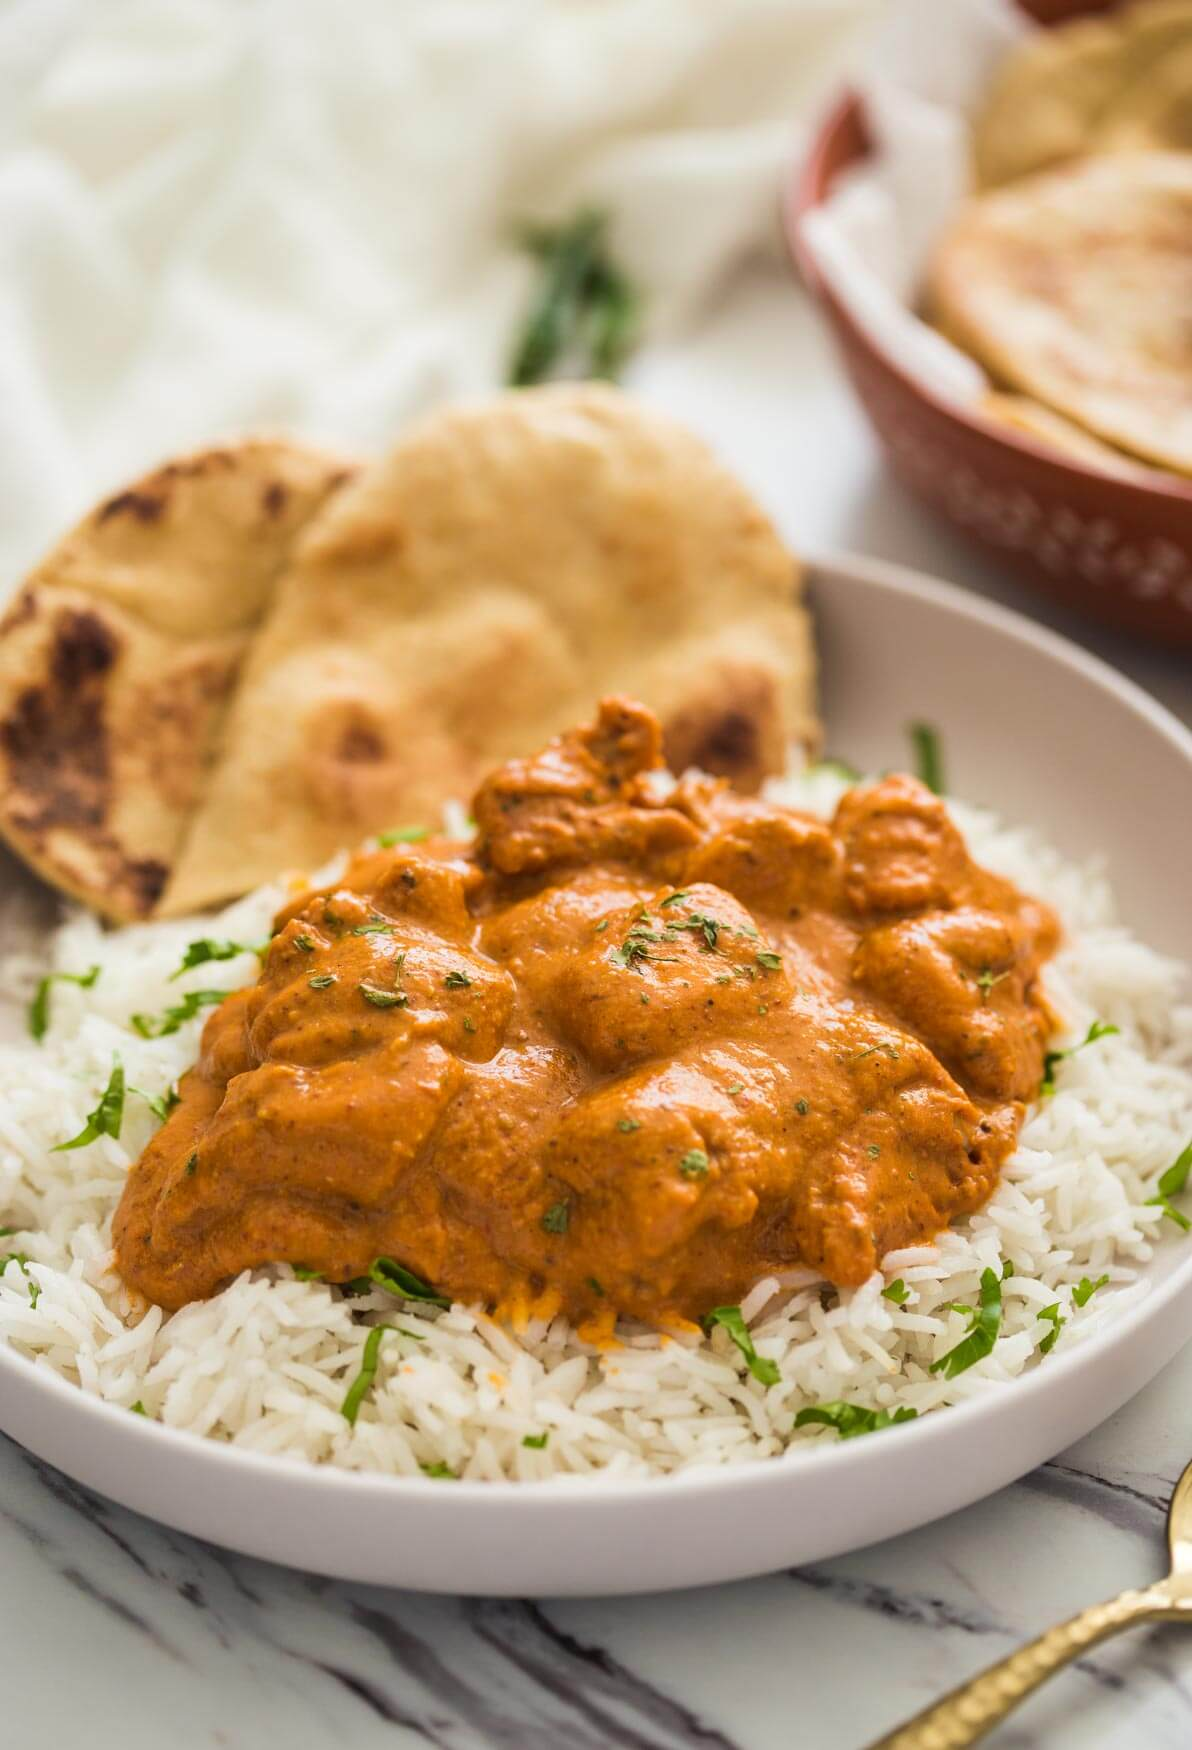 Restaurant style chicken tikka masala ready to serve in serving plate with homemade naan bread and plain rice